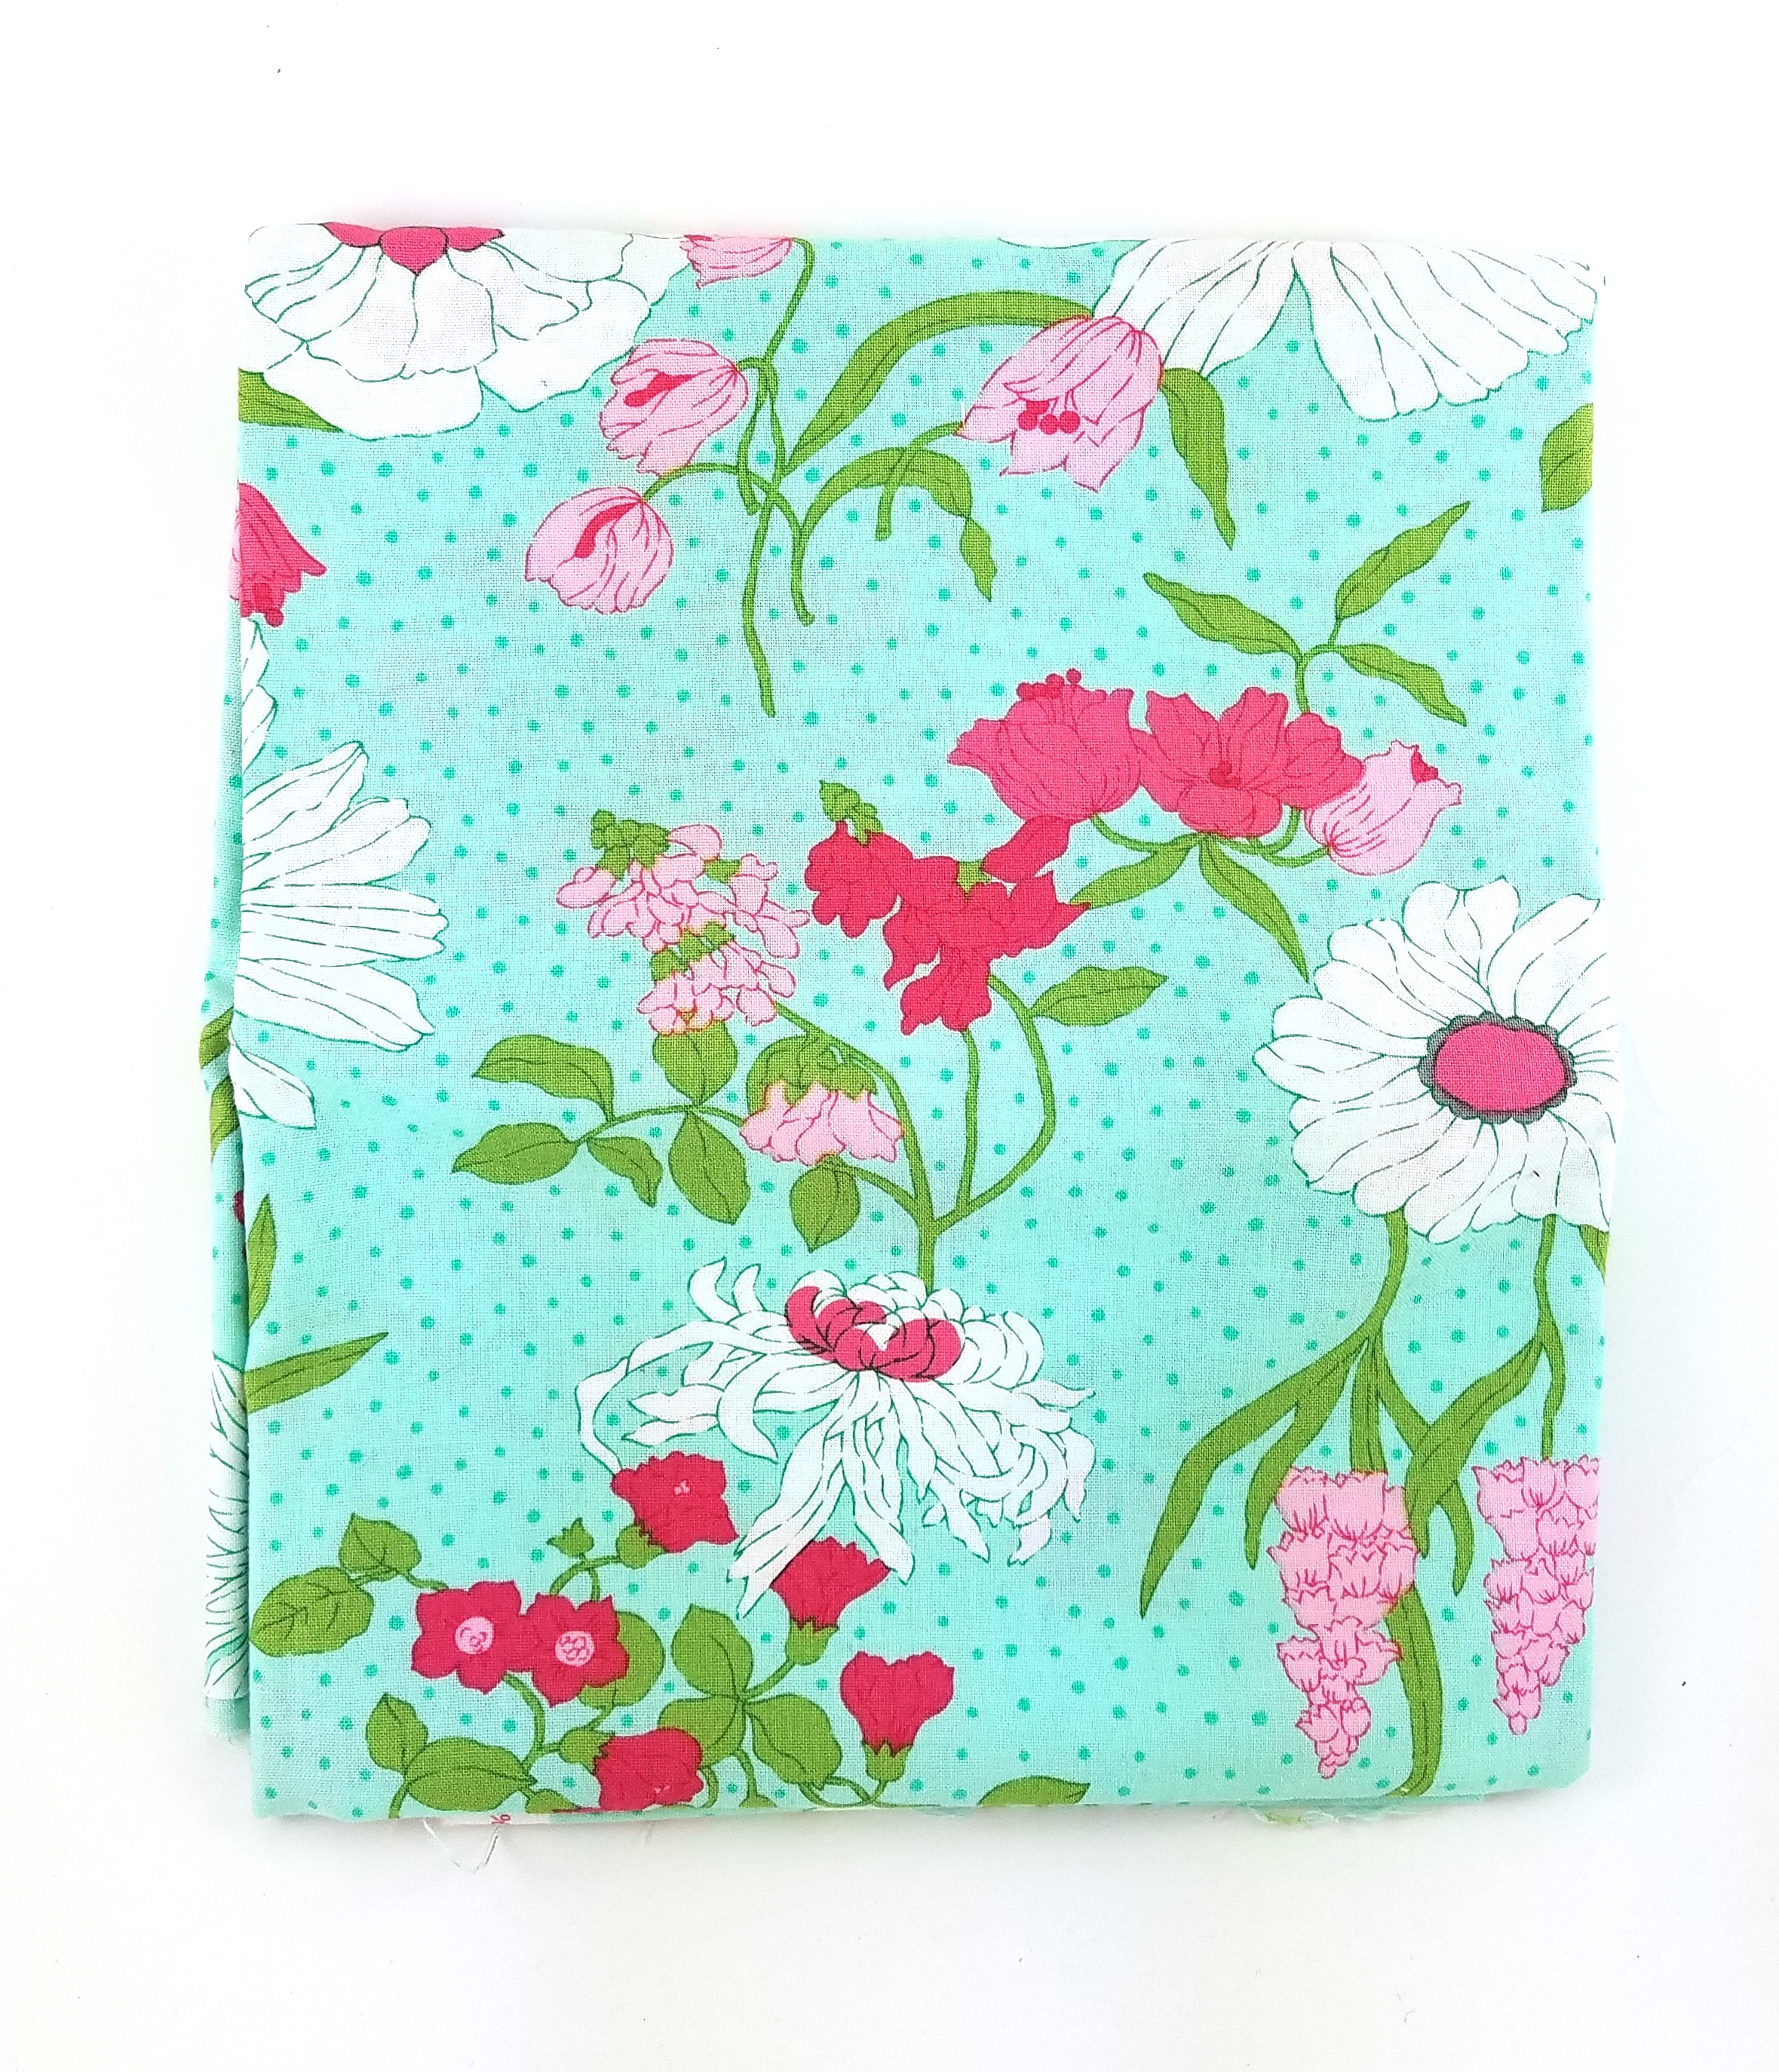 V and Co, Color Me Happy, Aqua Florals, 1 Yard minus 9 in x 14 in